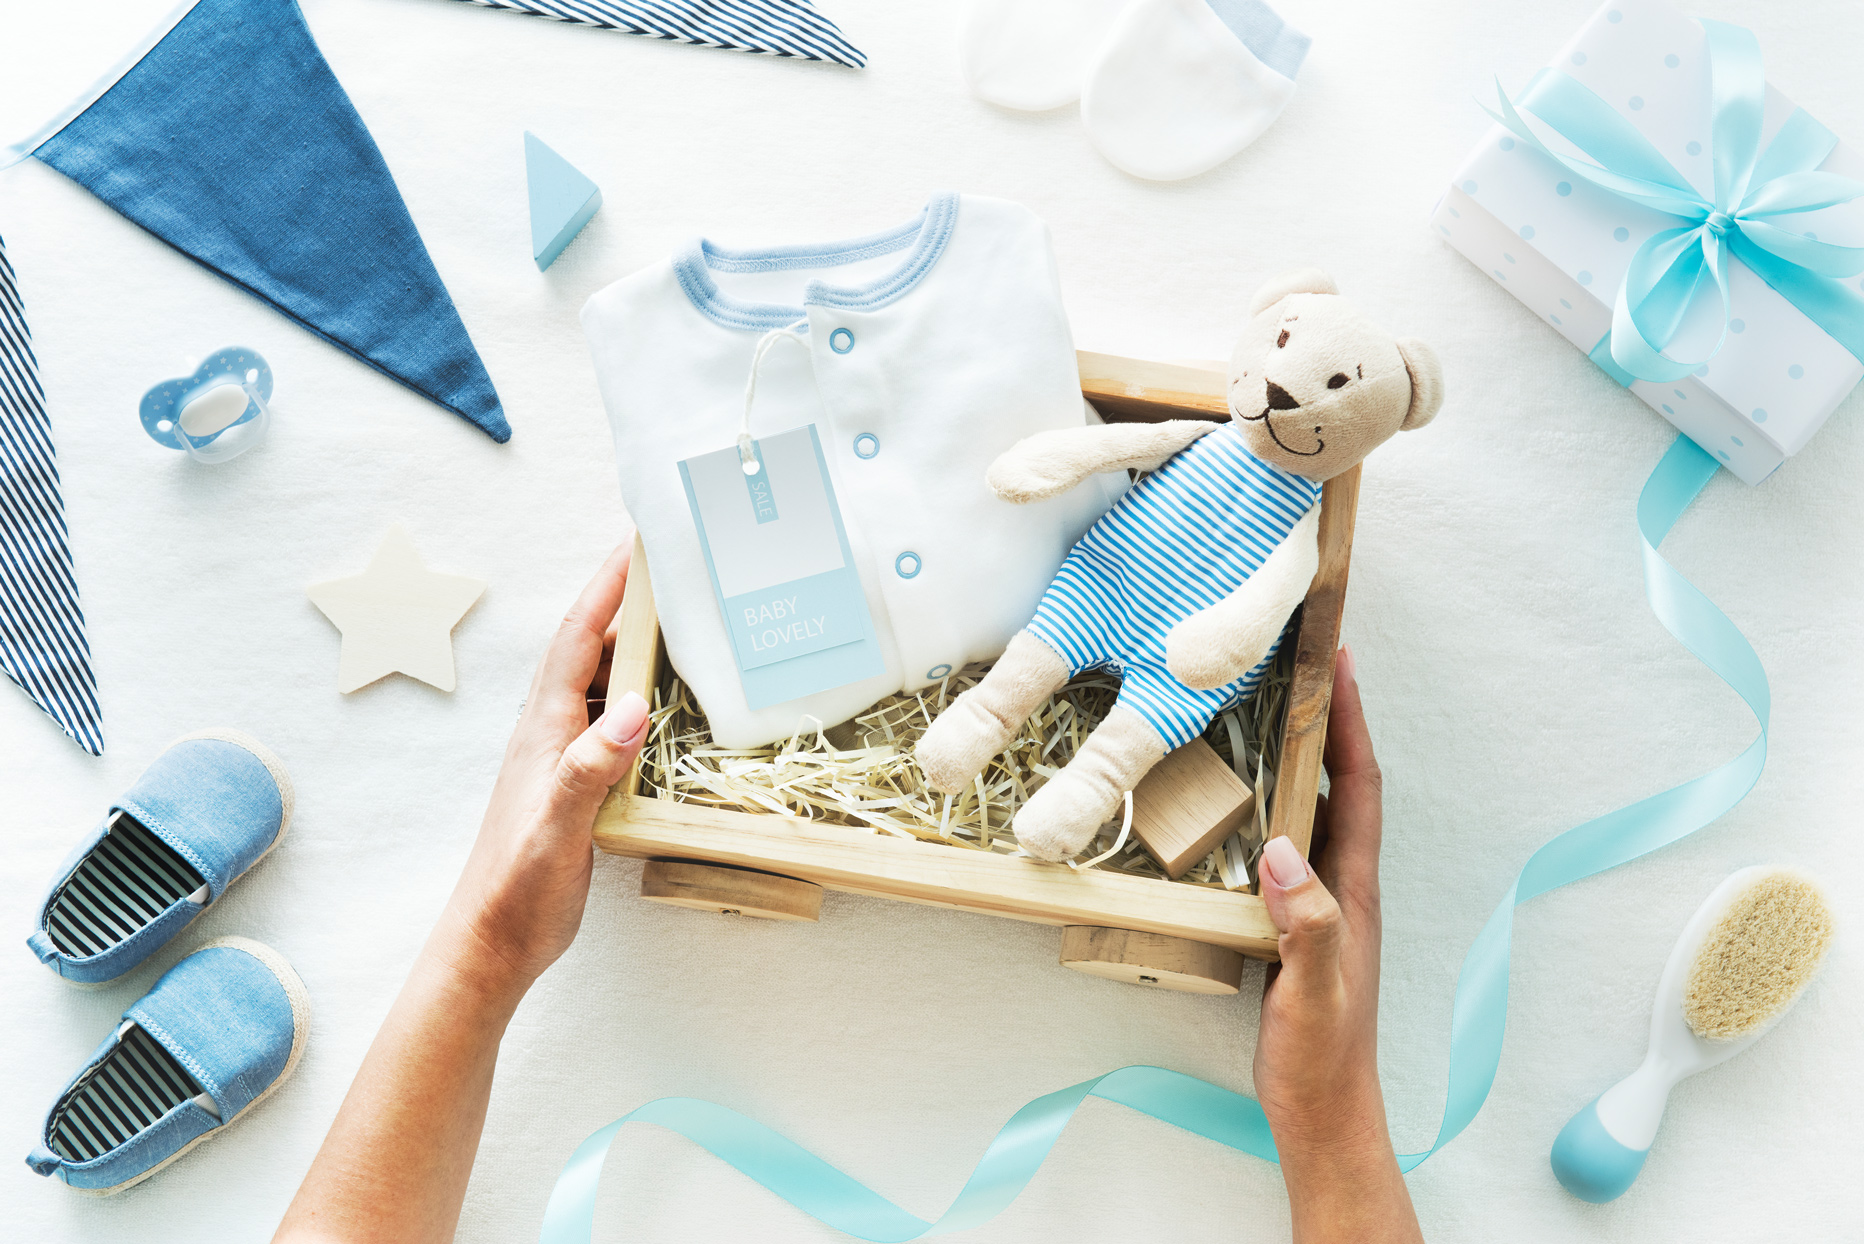 nursery decor baby shower gift Baby crib mobile expecting family gift mom to be gift